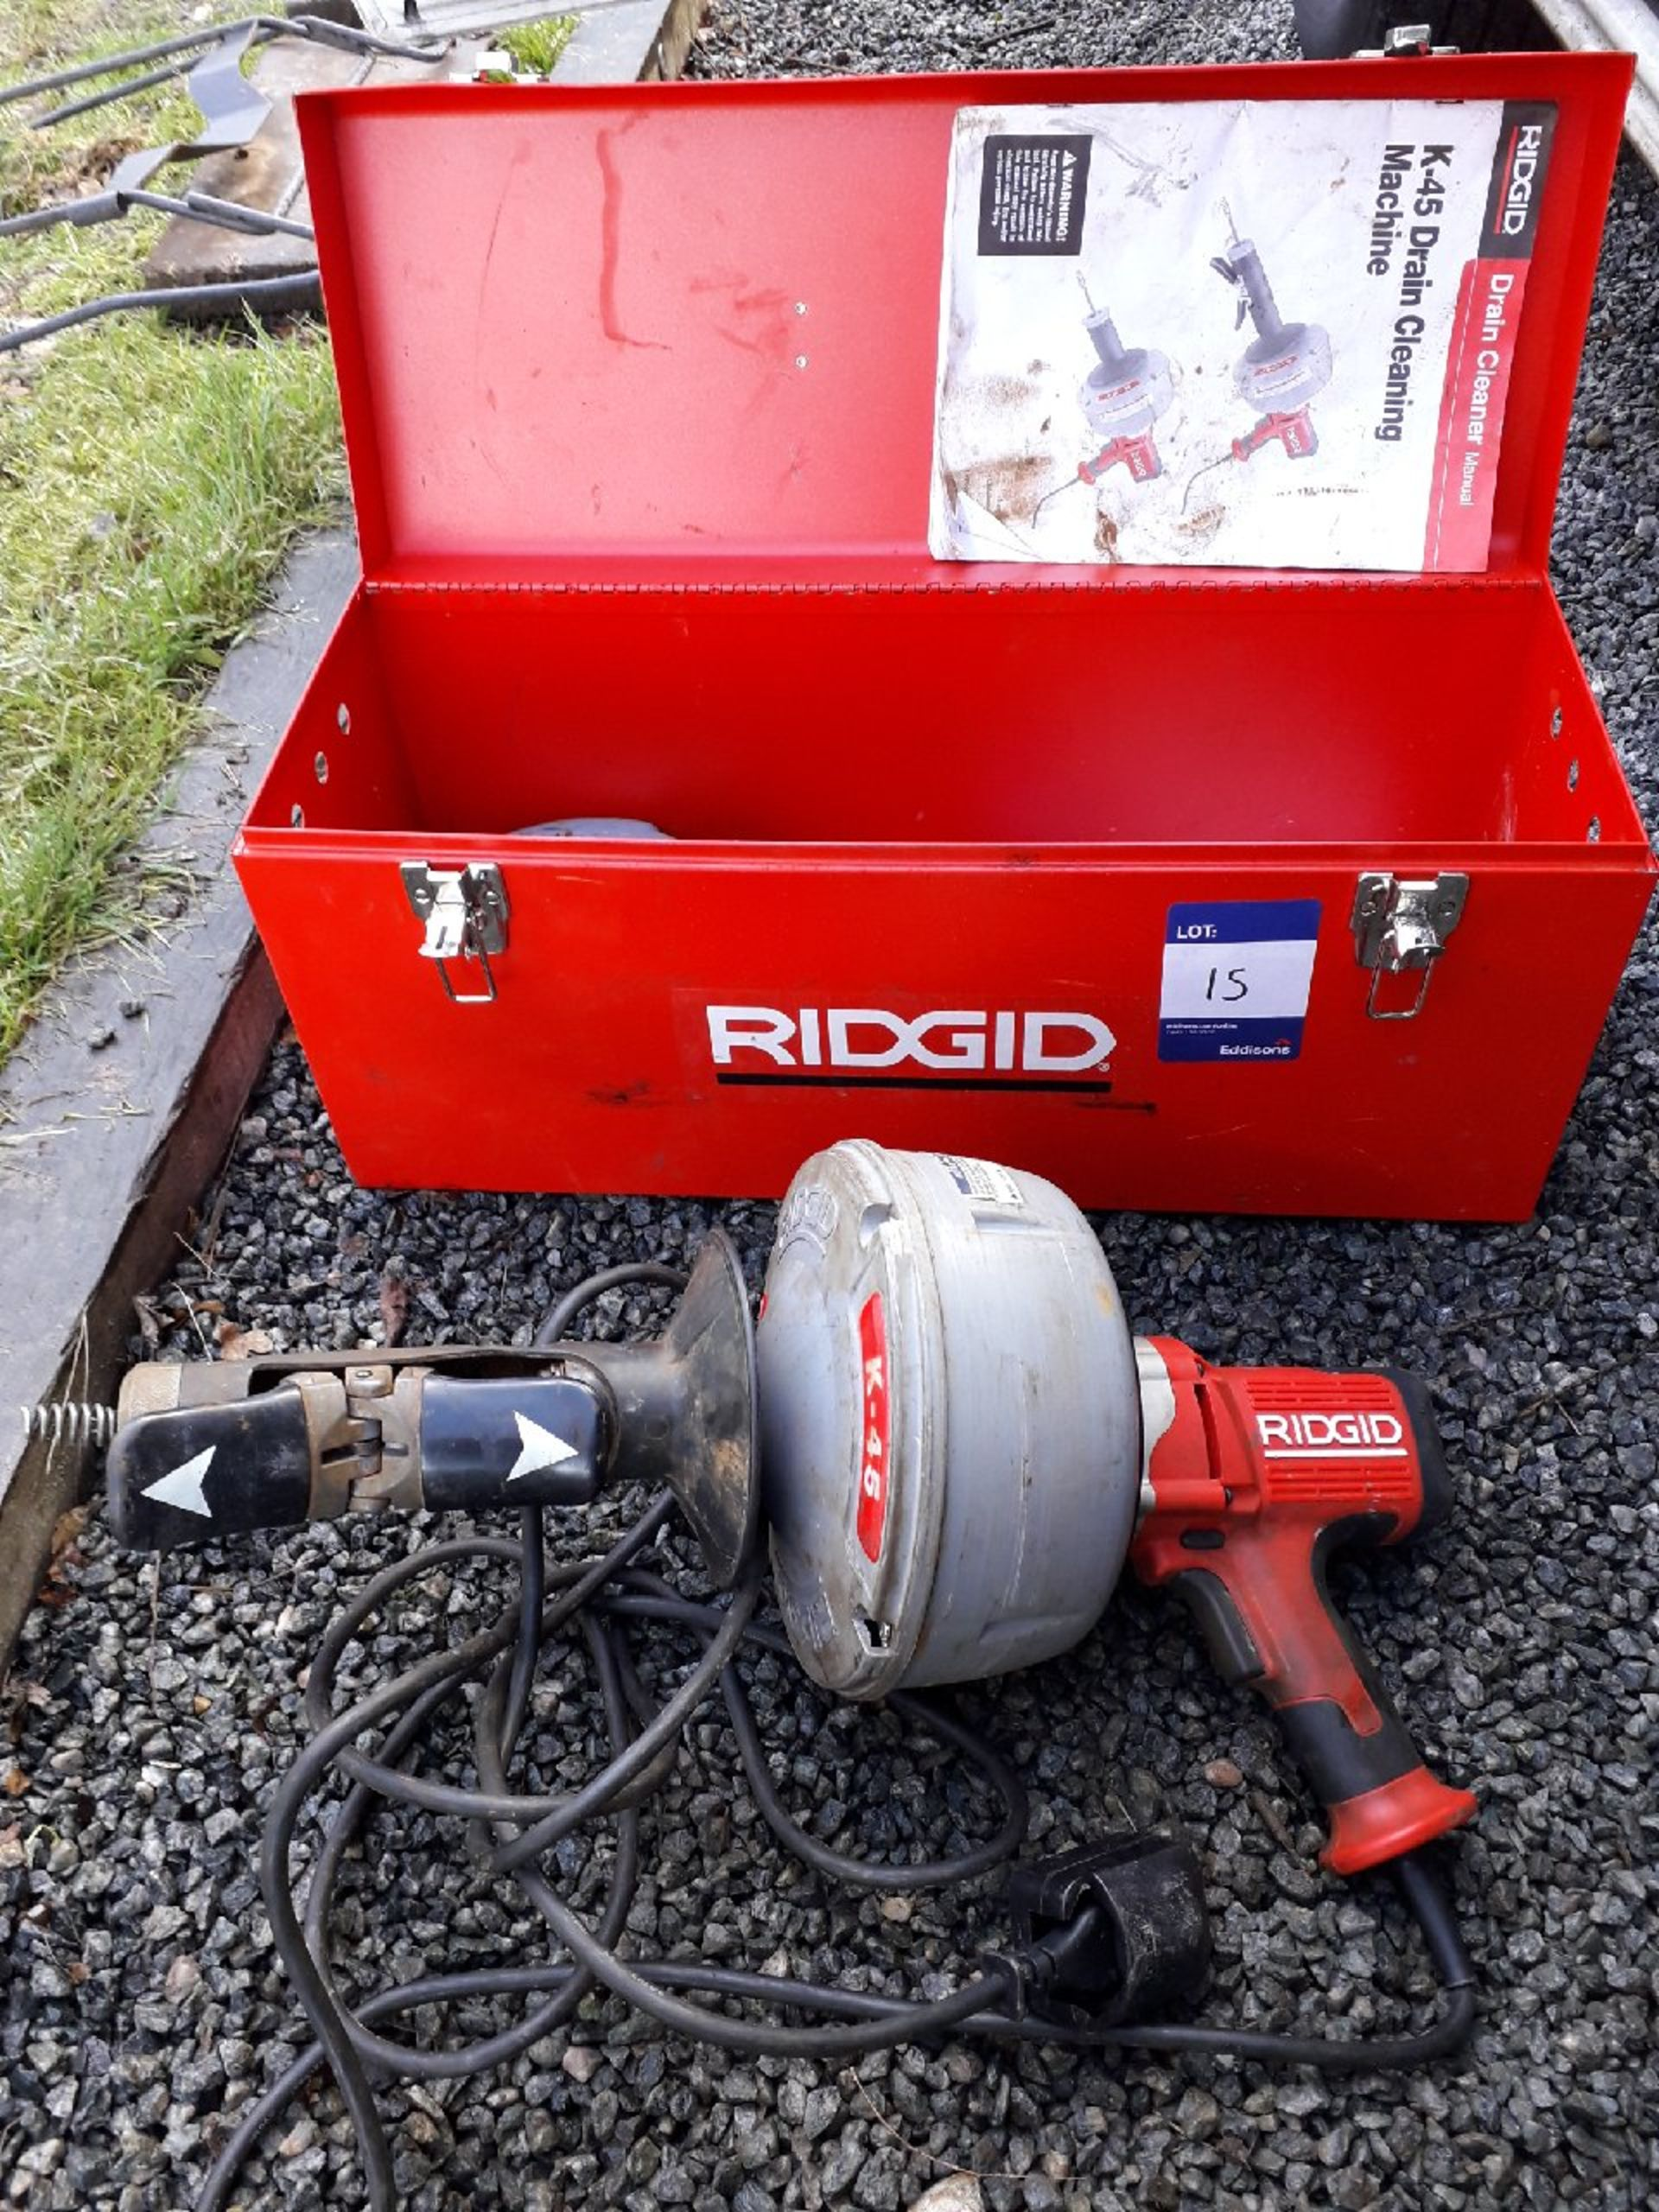 Lot 15 - Ridgid K4S Drain cleaning machine serial number 0817, 240v. (Please note: Viewing is by